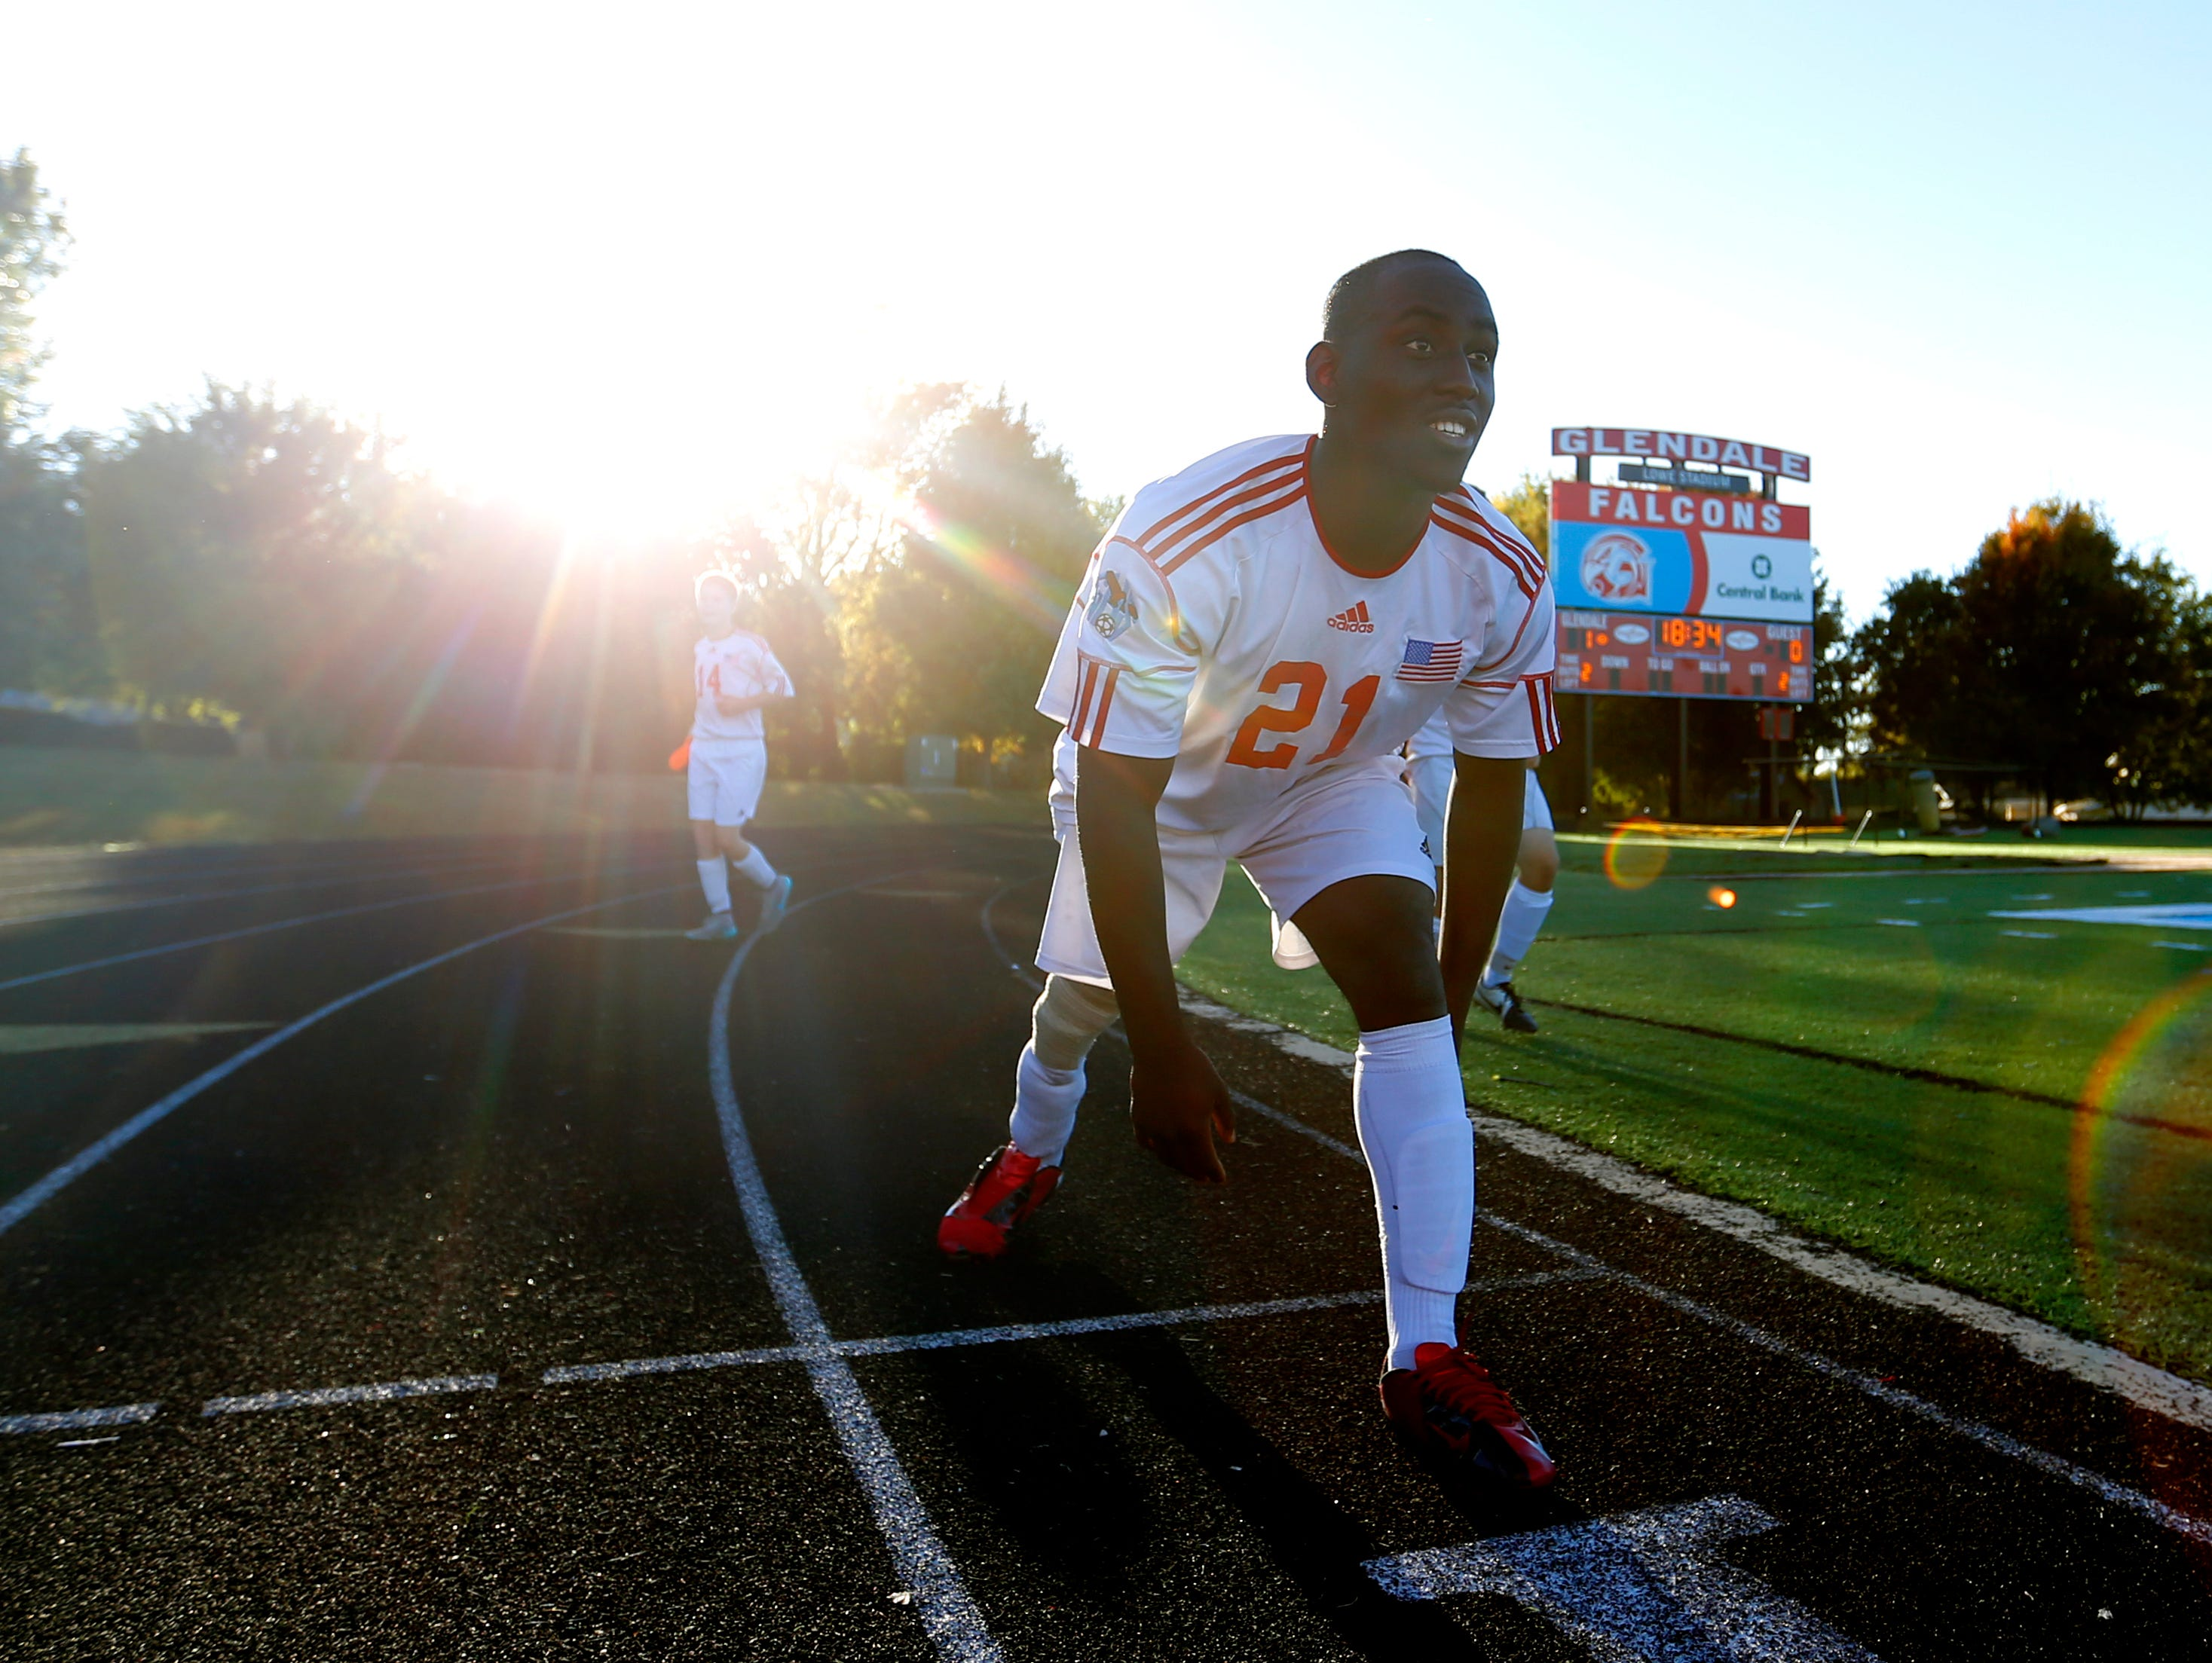 Glendale senior David Odun-Ayo stretches before entering a soccer game against Branson on Tuesday, Oct. 13, 2015. Odun-Ayo, who was born with proximal femoral focal deficiency, and is missing part of his right leg, runs and walks with a prosthetic leg is playing organized soccer for the first time.